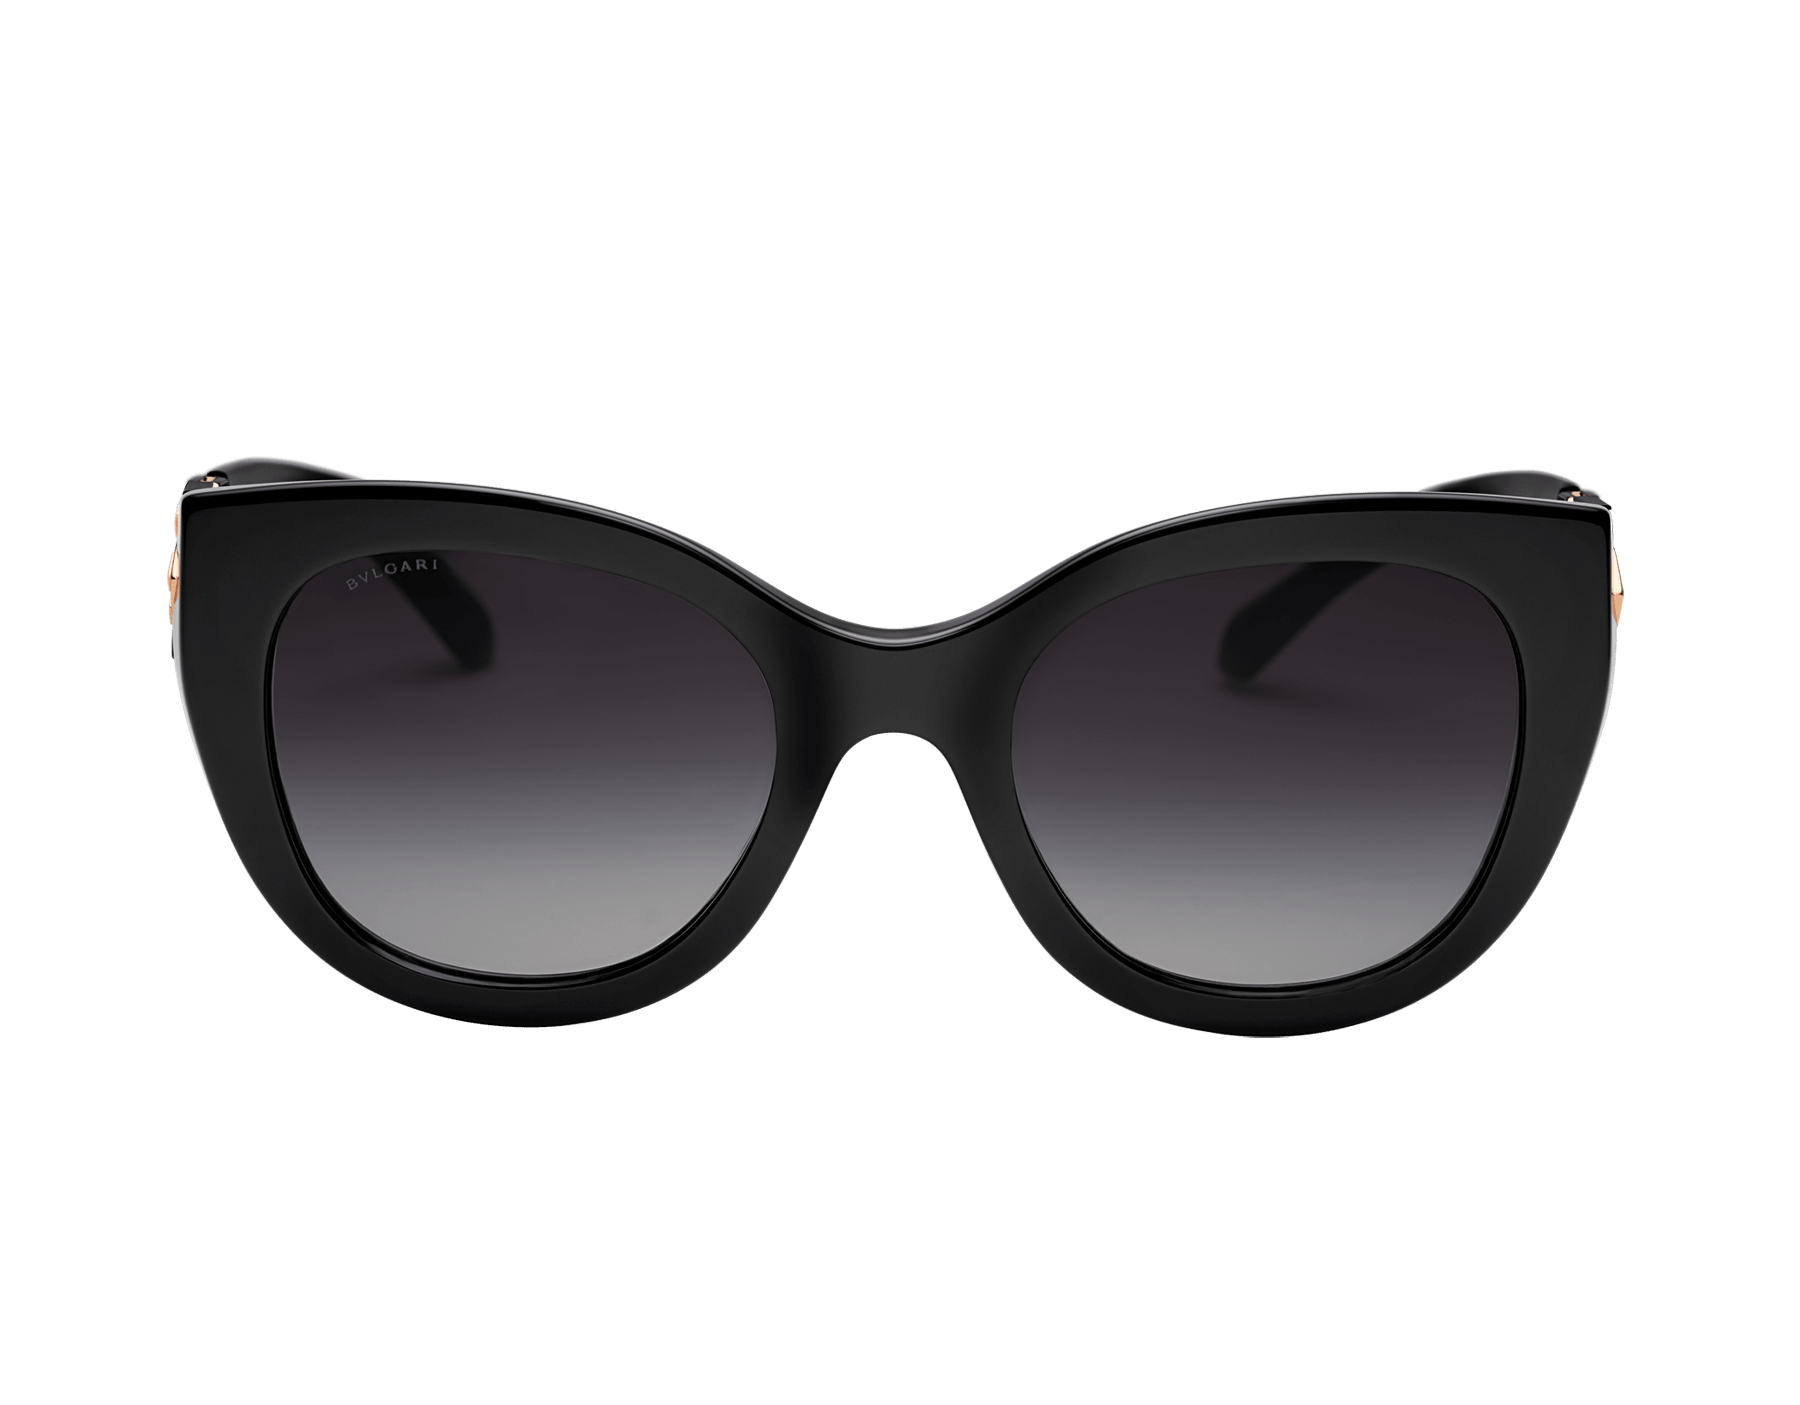 Bvlgari Serpenti squared bold acetate sunglasses with Serpenti metal décor and crystals. 903741 image 2